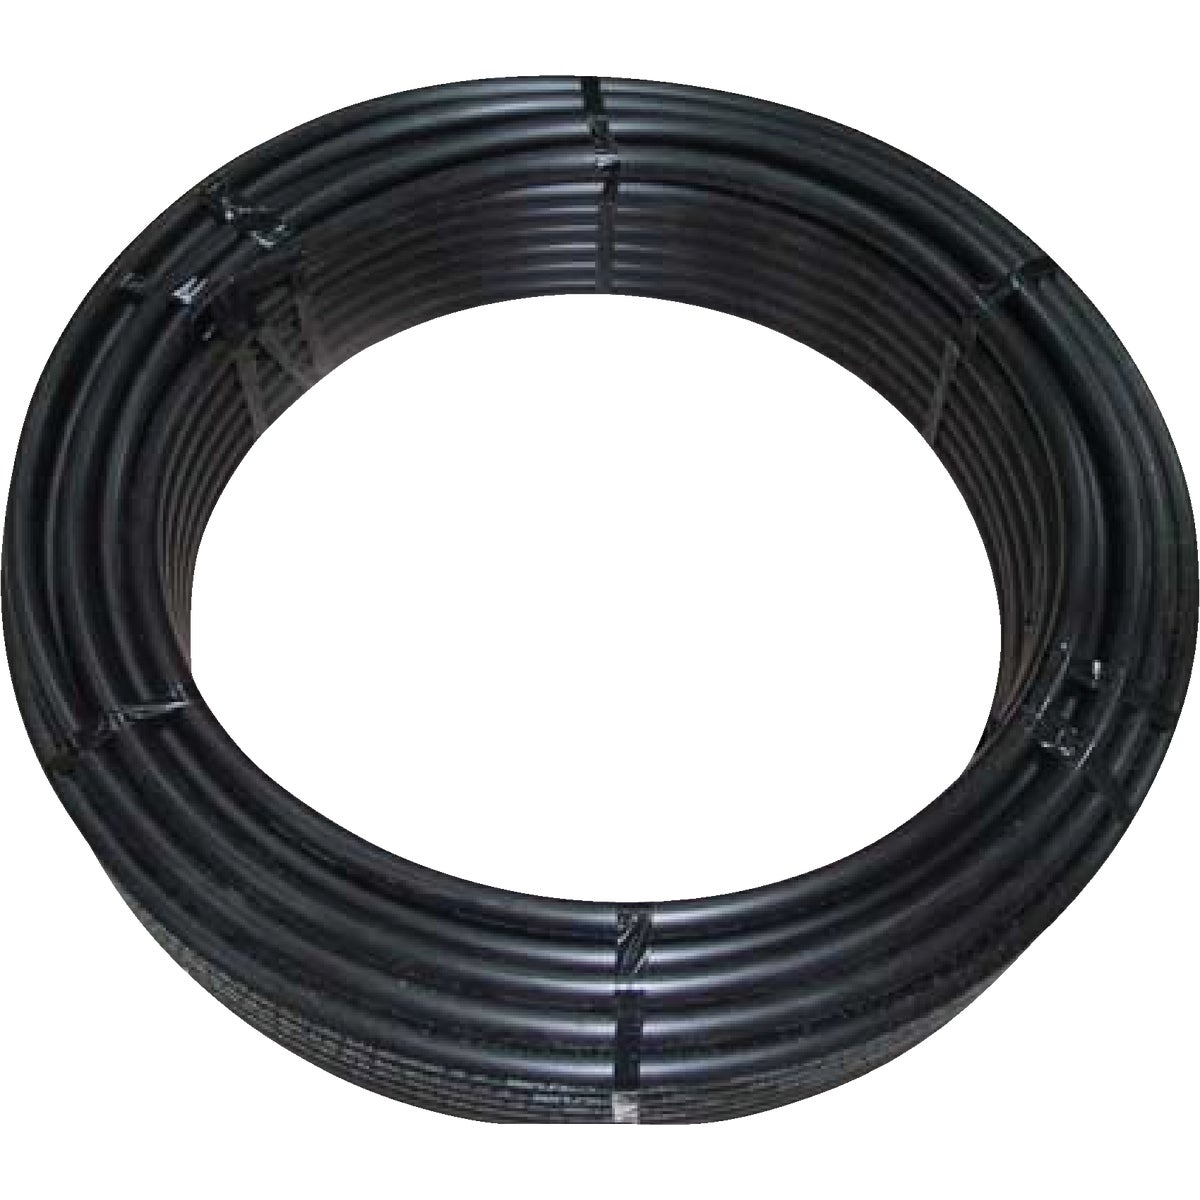 "3/4""X400' HD125 PIPE - 18210 by Cresline Plastic Co"